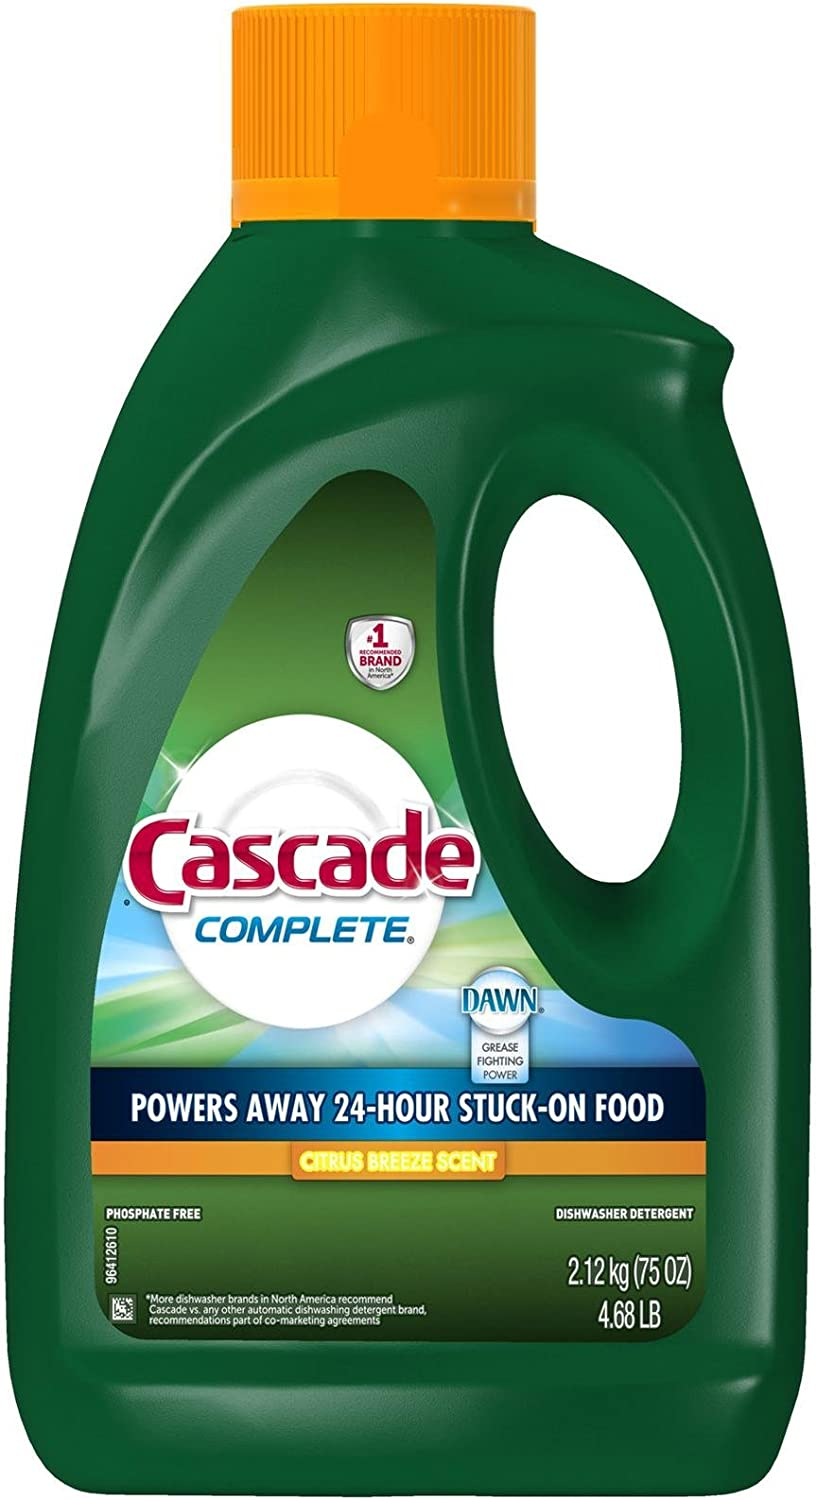 Cascade Complete Gel All-in-1 Dishwasher Detergent - 75 oz - Citrus breeze - 2 pk (Packaging May Vary)